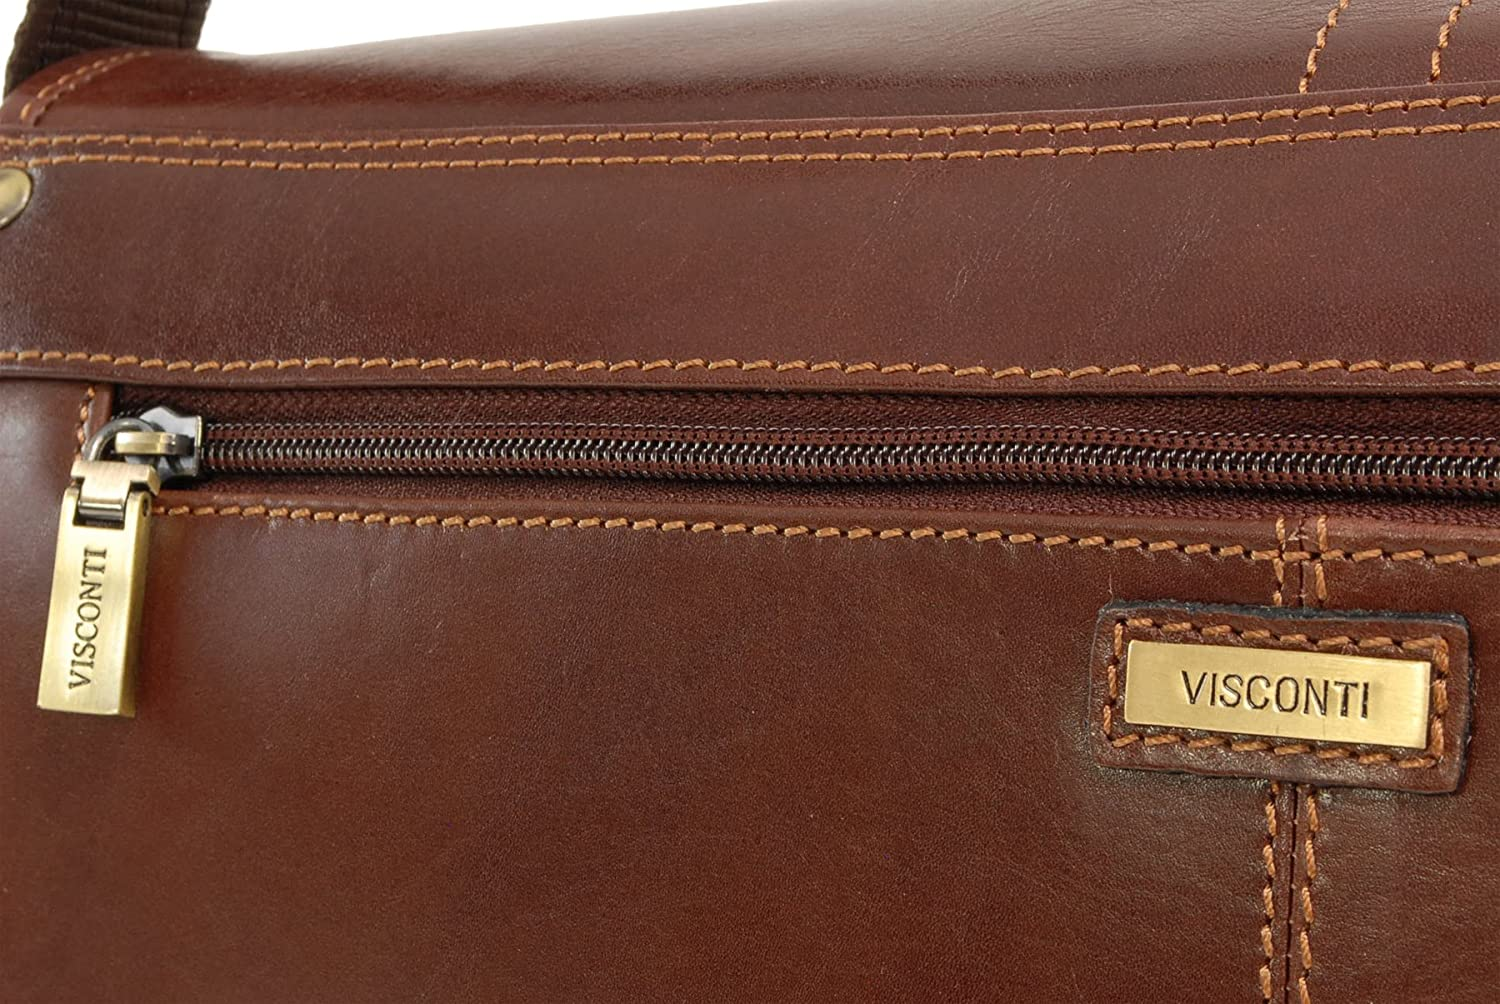 27c8ee80b60 Visconti Vegetable Tanned Leather Messenger Bag A4 - Workplace - VT7 - Aldo   Amazon.co.uk  Shoes   Bags